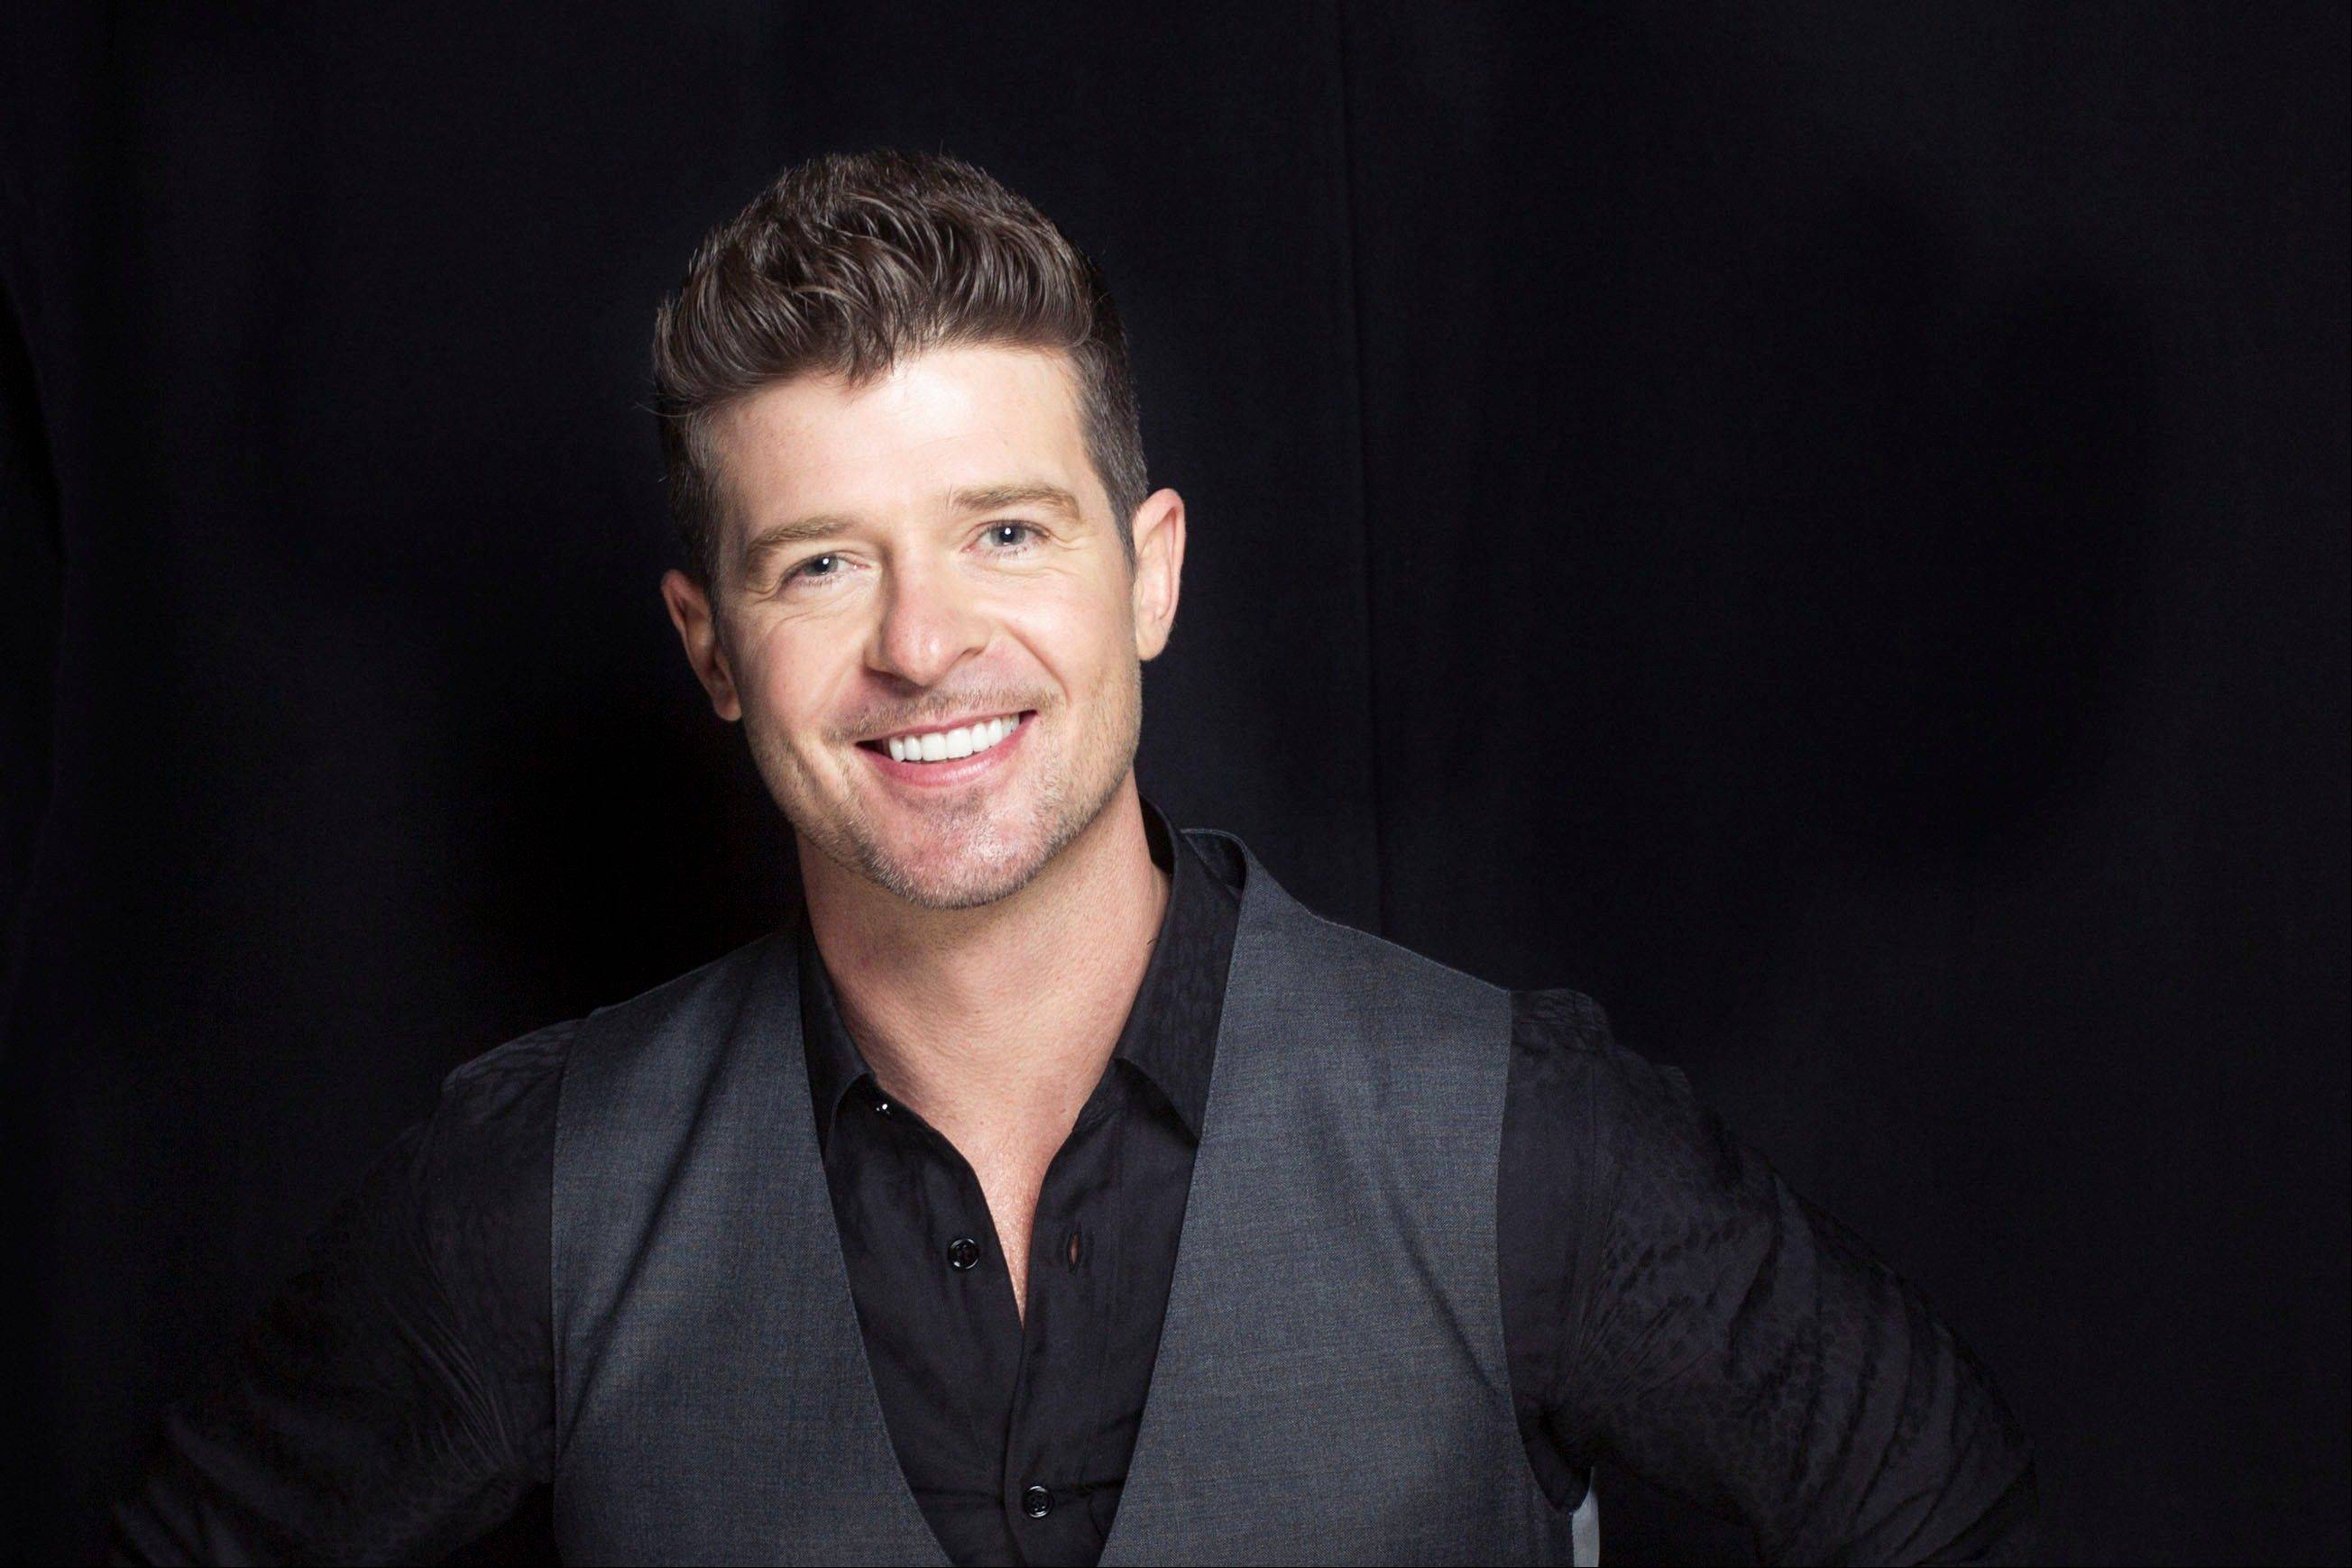 R&B singer-songwriter Robin Thicke is one of the headliners for the V103 25th Anniversary concert at the Allstate Arena in Rosemont on Saturday, Oct. 5.